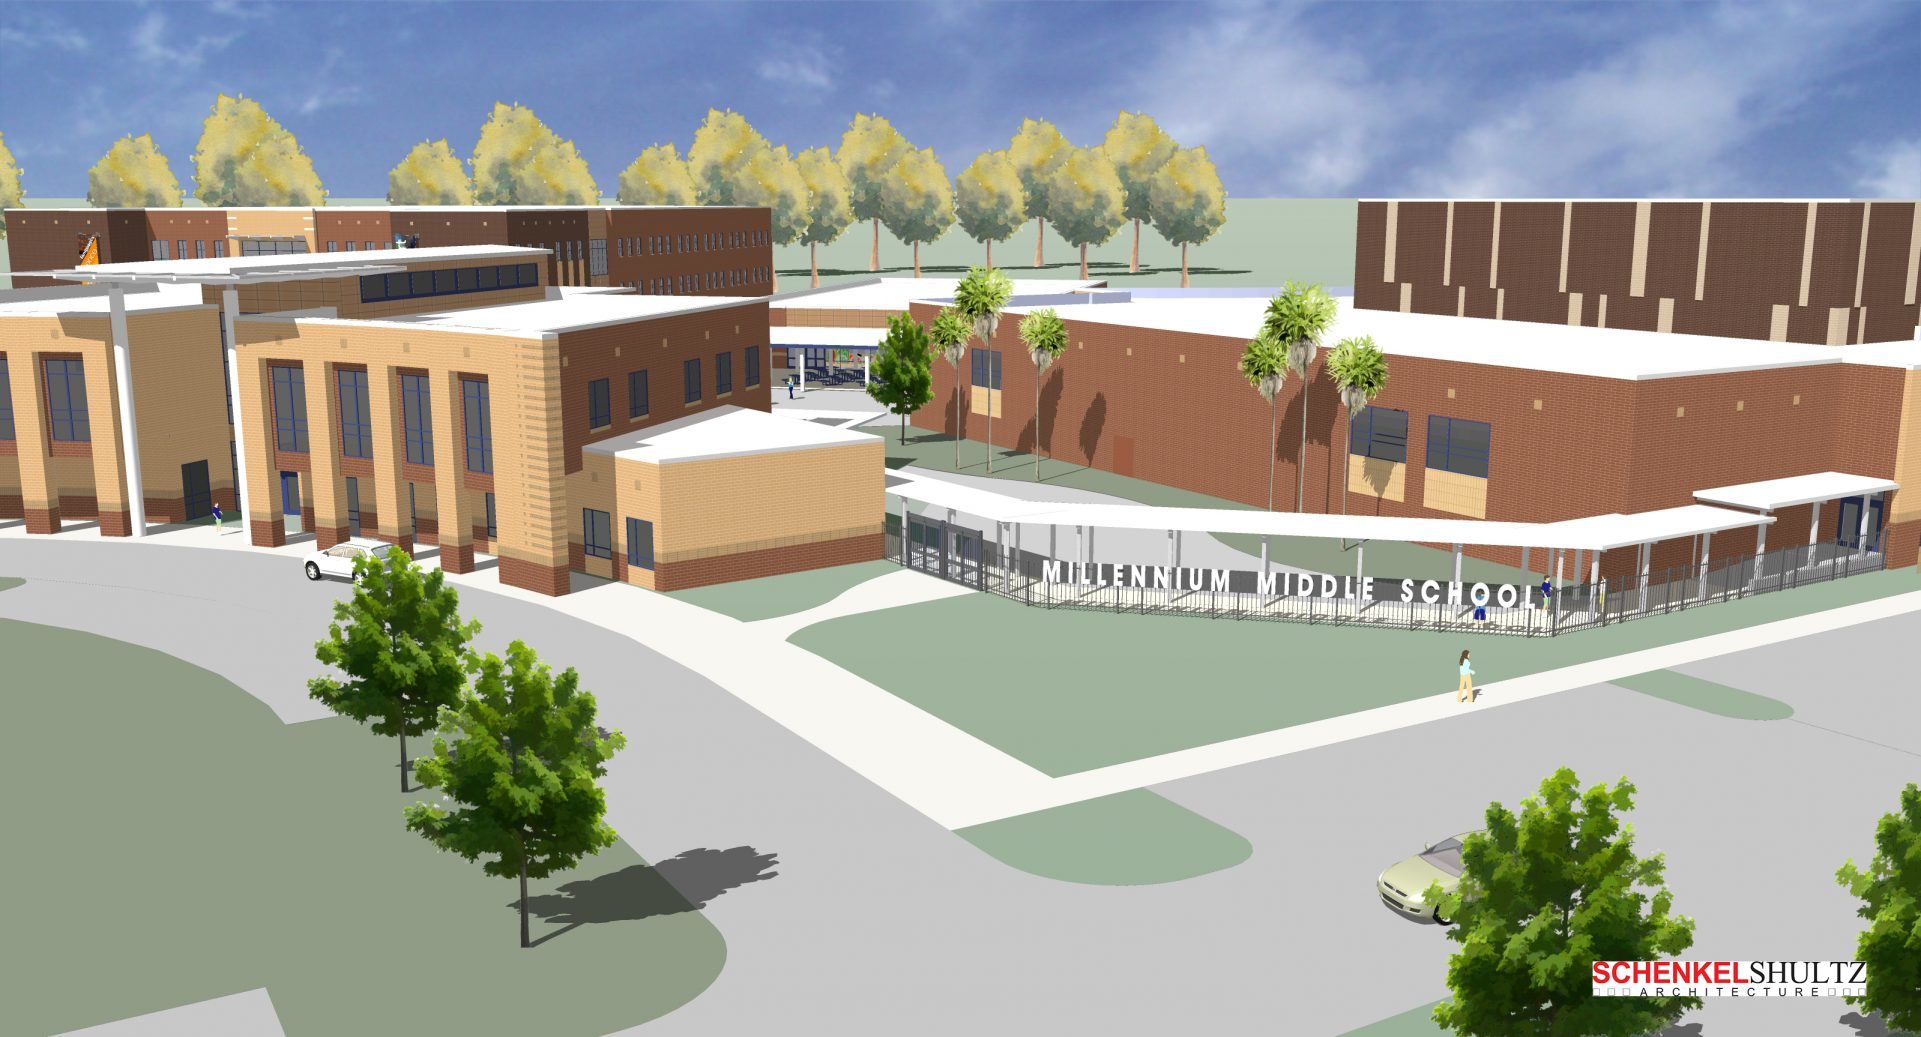 Wharton-Smith Selected as Construction Manager for New Millennium Middle School